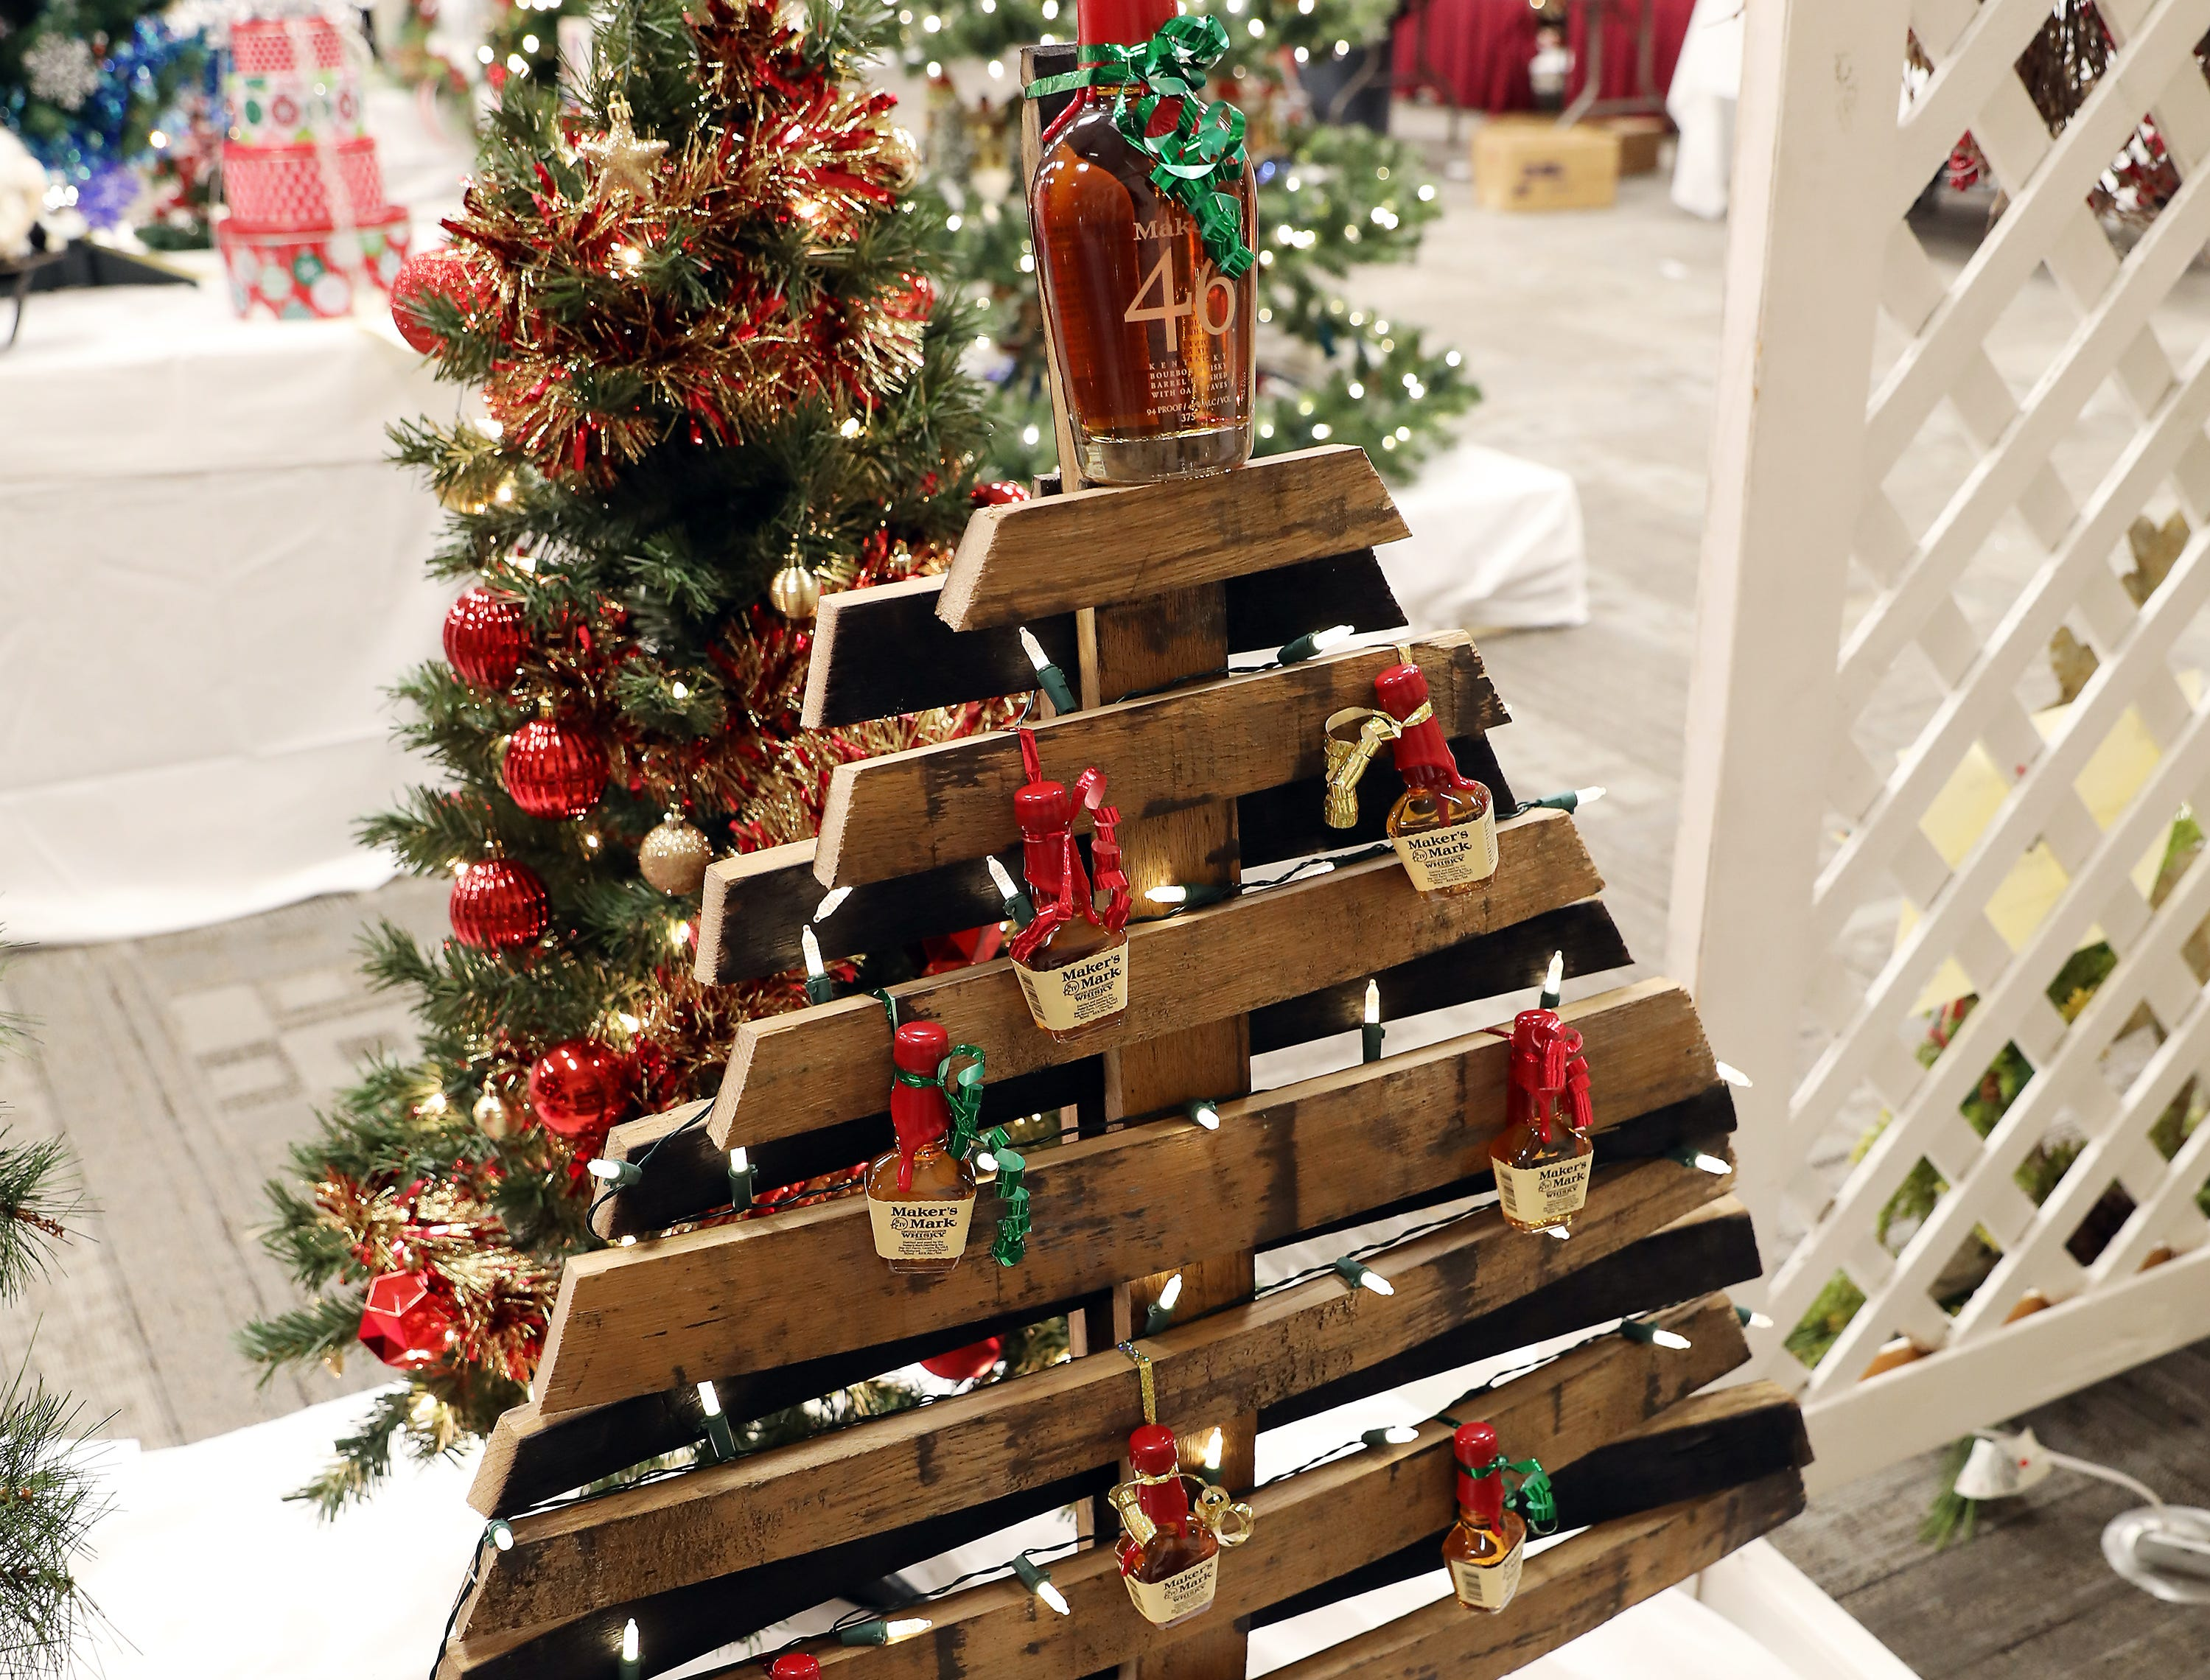 181	4:00 PM	Ohio Stave Company	Medium Tree	Bourbon Barrel Tree	A Christmas tree crafted from a Bourbon barrel.		Enjoy your holiday season with bottles of Bourbon whiskey!